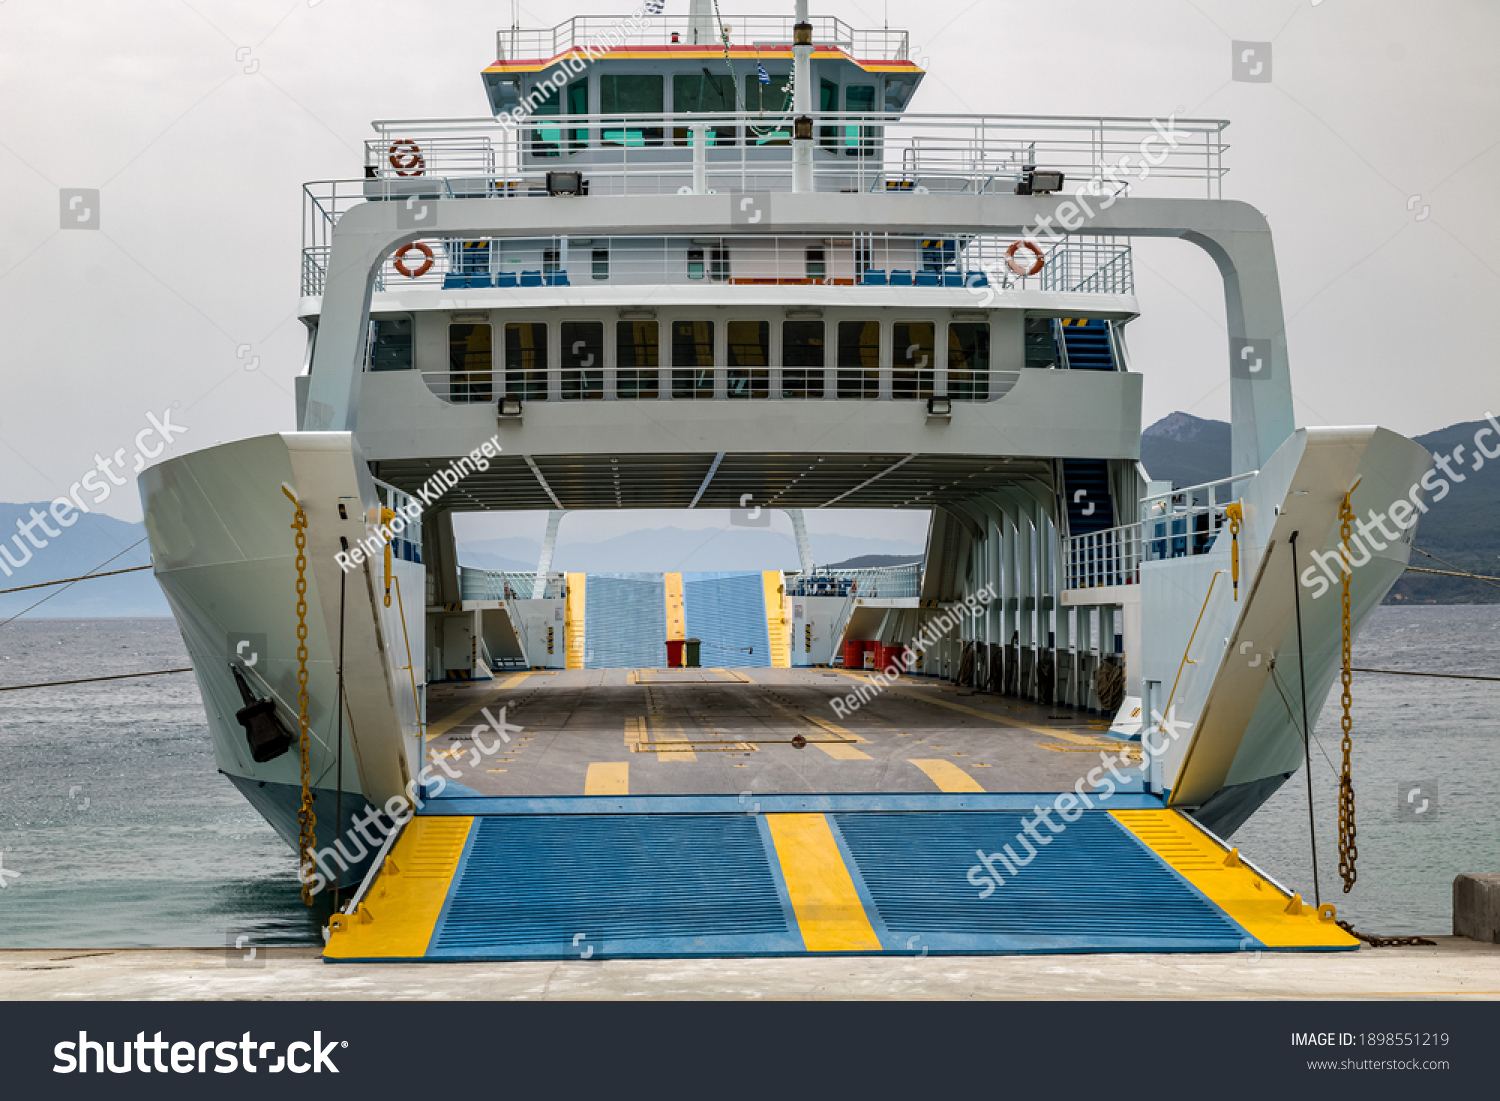 a ferry has docked in the port and is waiting for passengers and cars with an open loading ramp. #1898551219